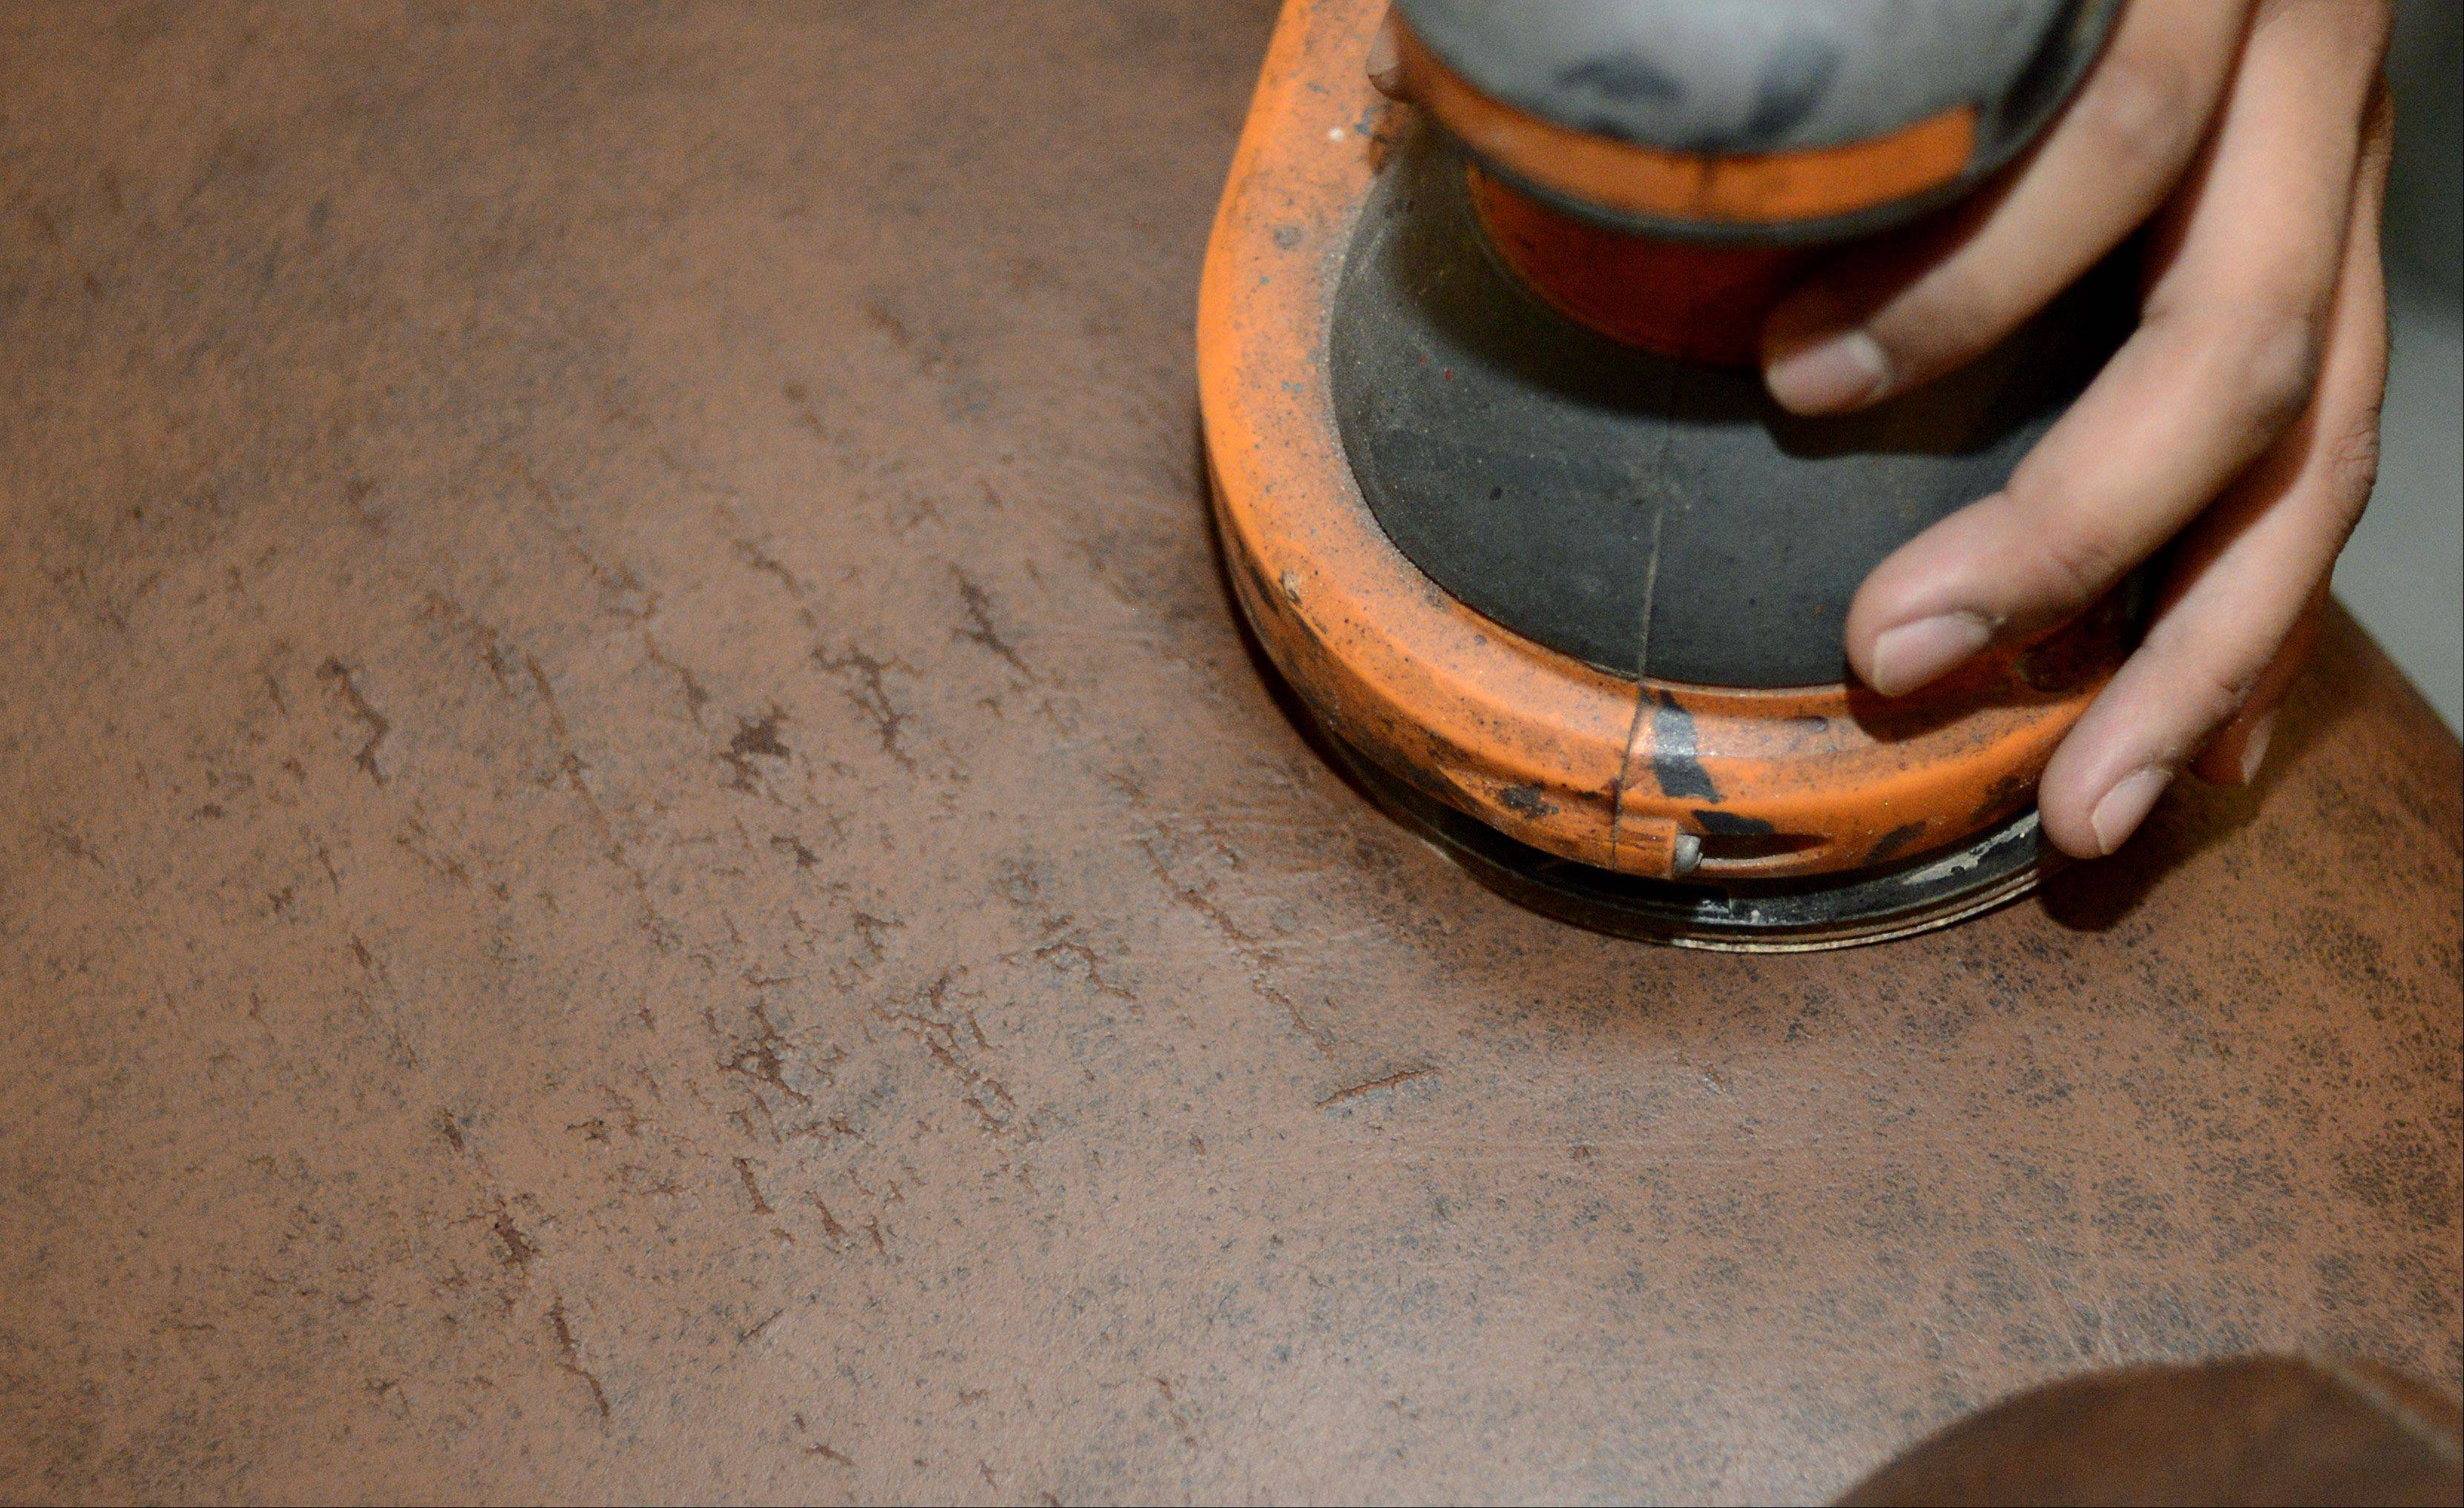 One of the steps of furniture restoration includes resurfacing with a sanding device.